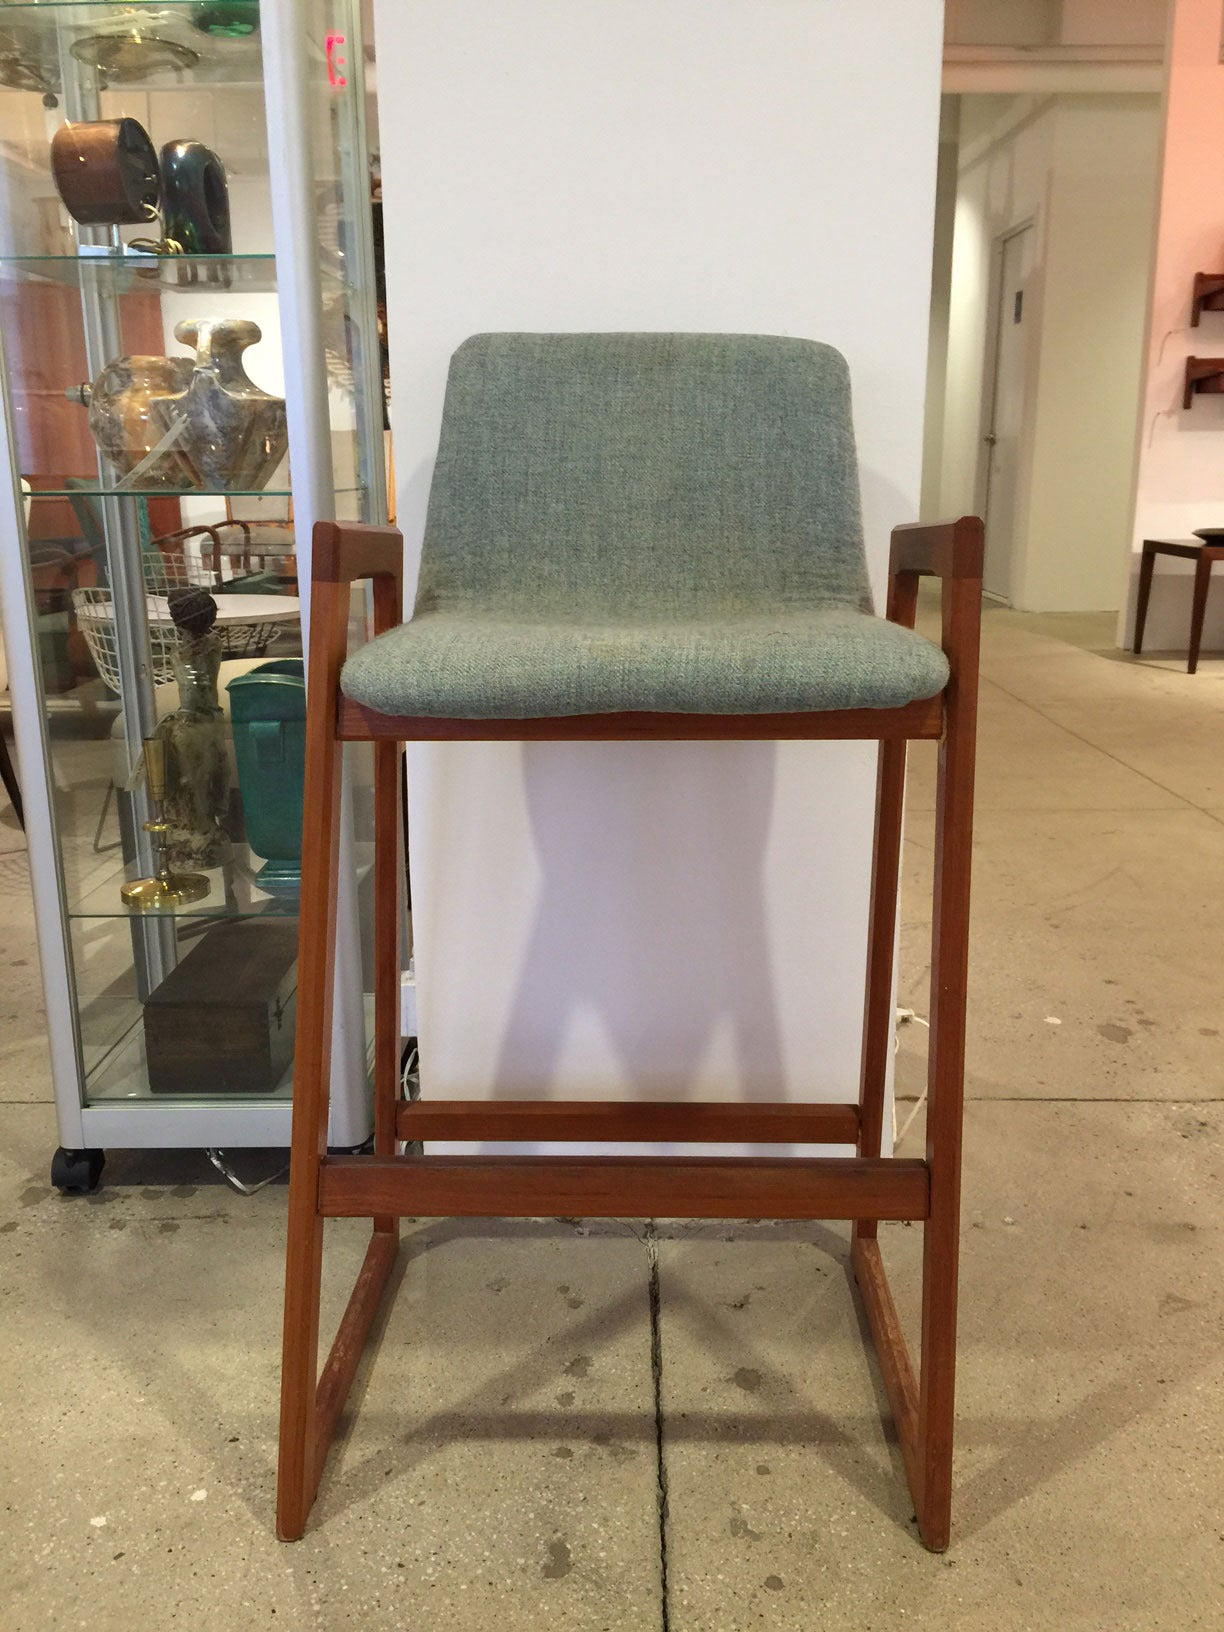 Mid-20th Century Vintage Danish Teak Bar Stool with Arms in COM (6 Available) For Sale